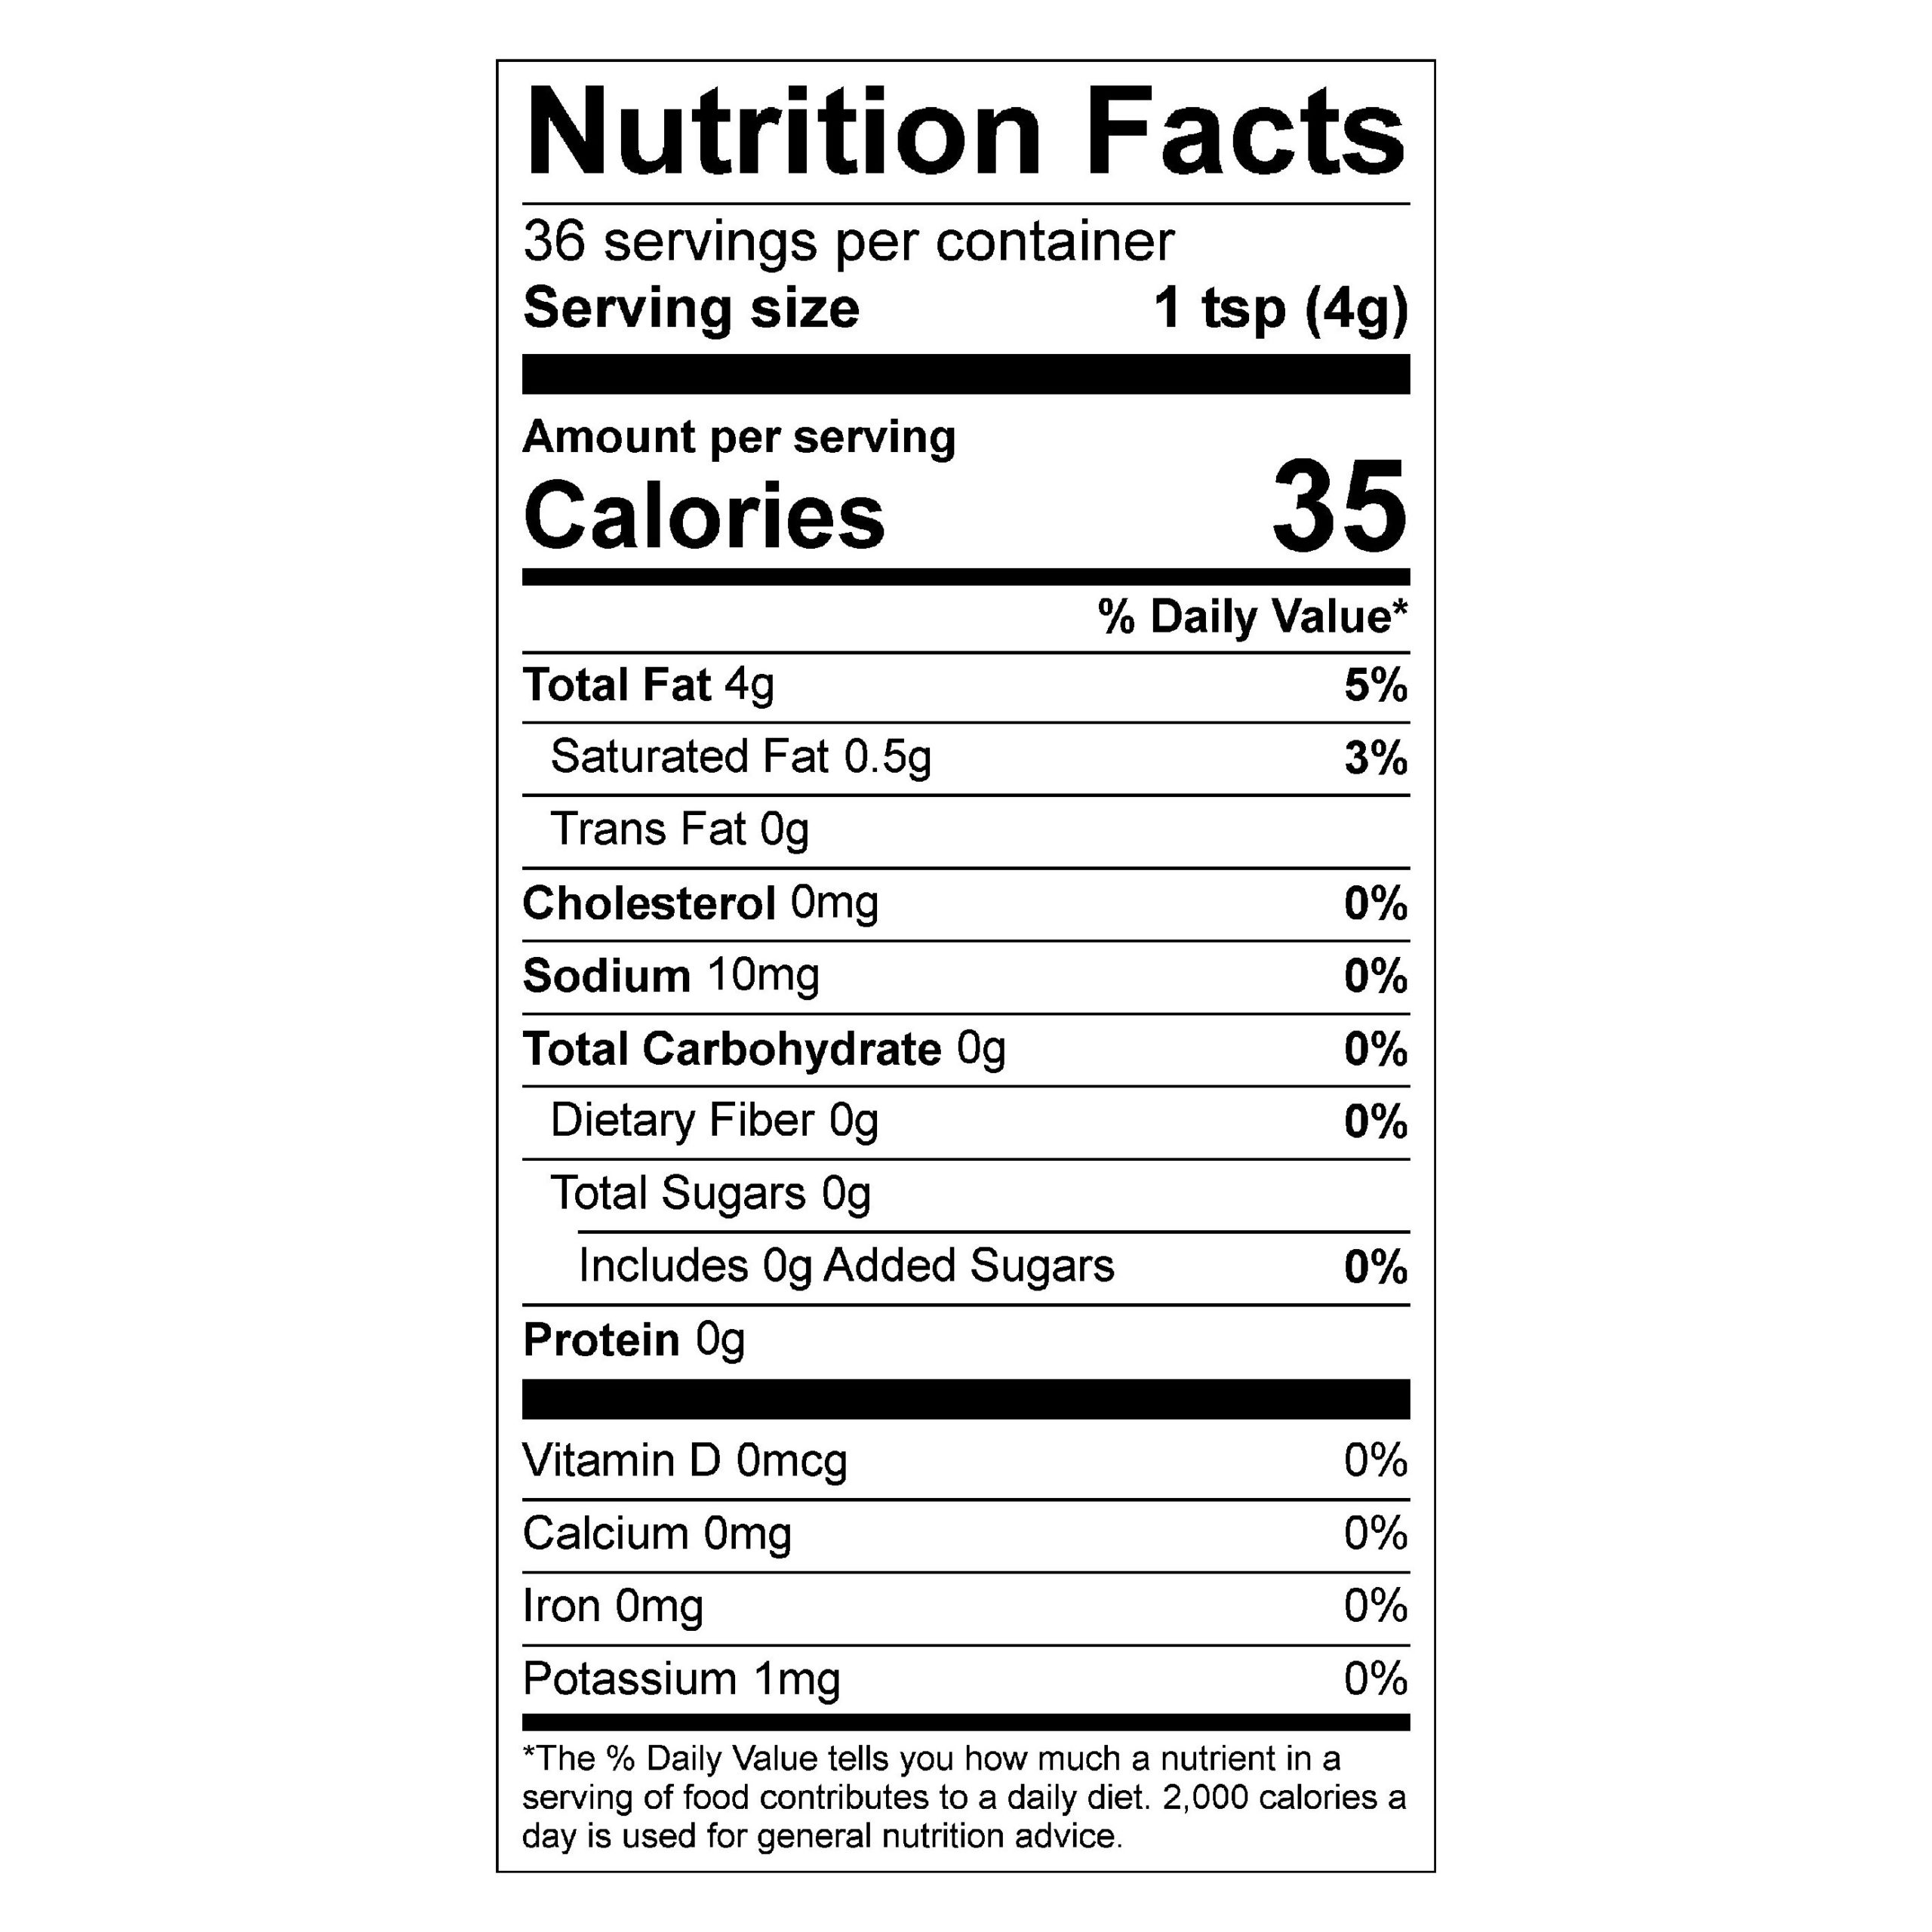 Nutrition facts for chili oil (6oz bottle)